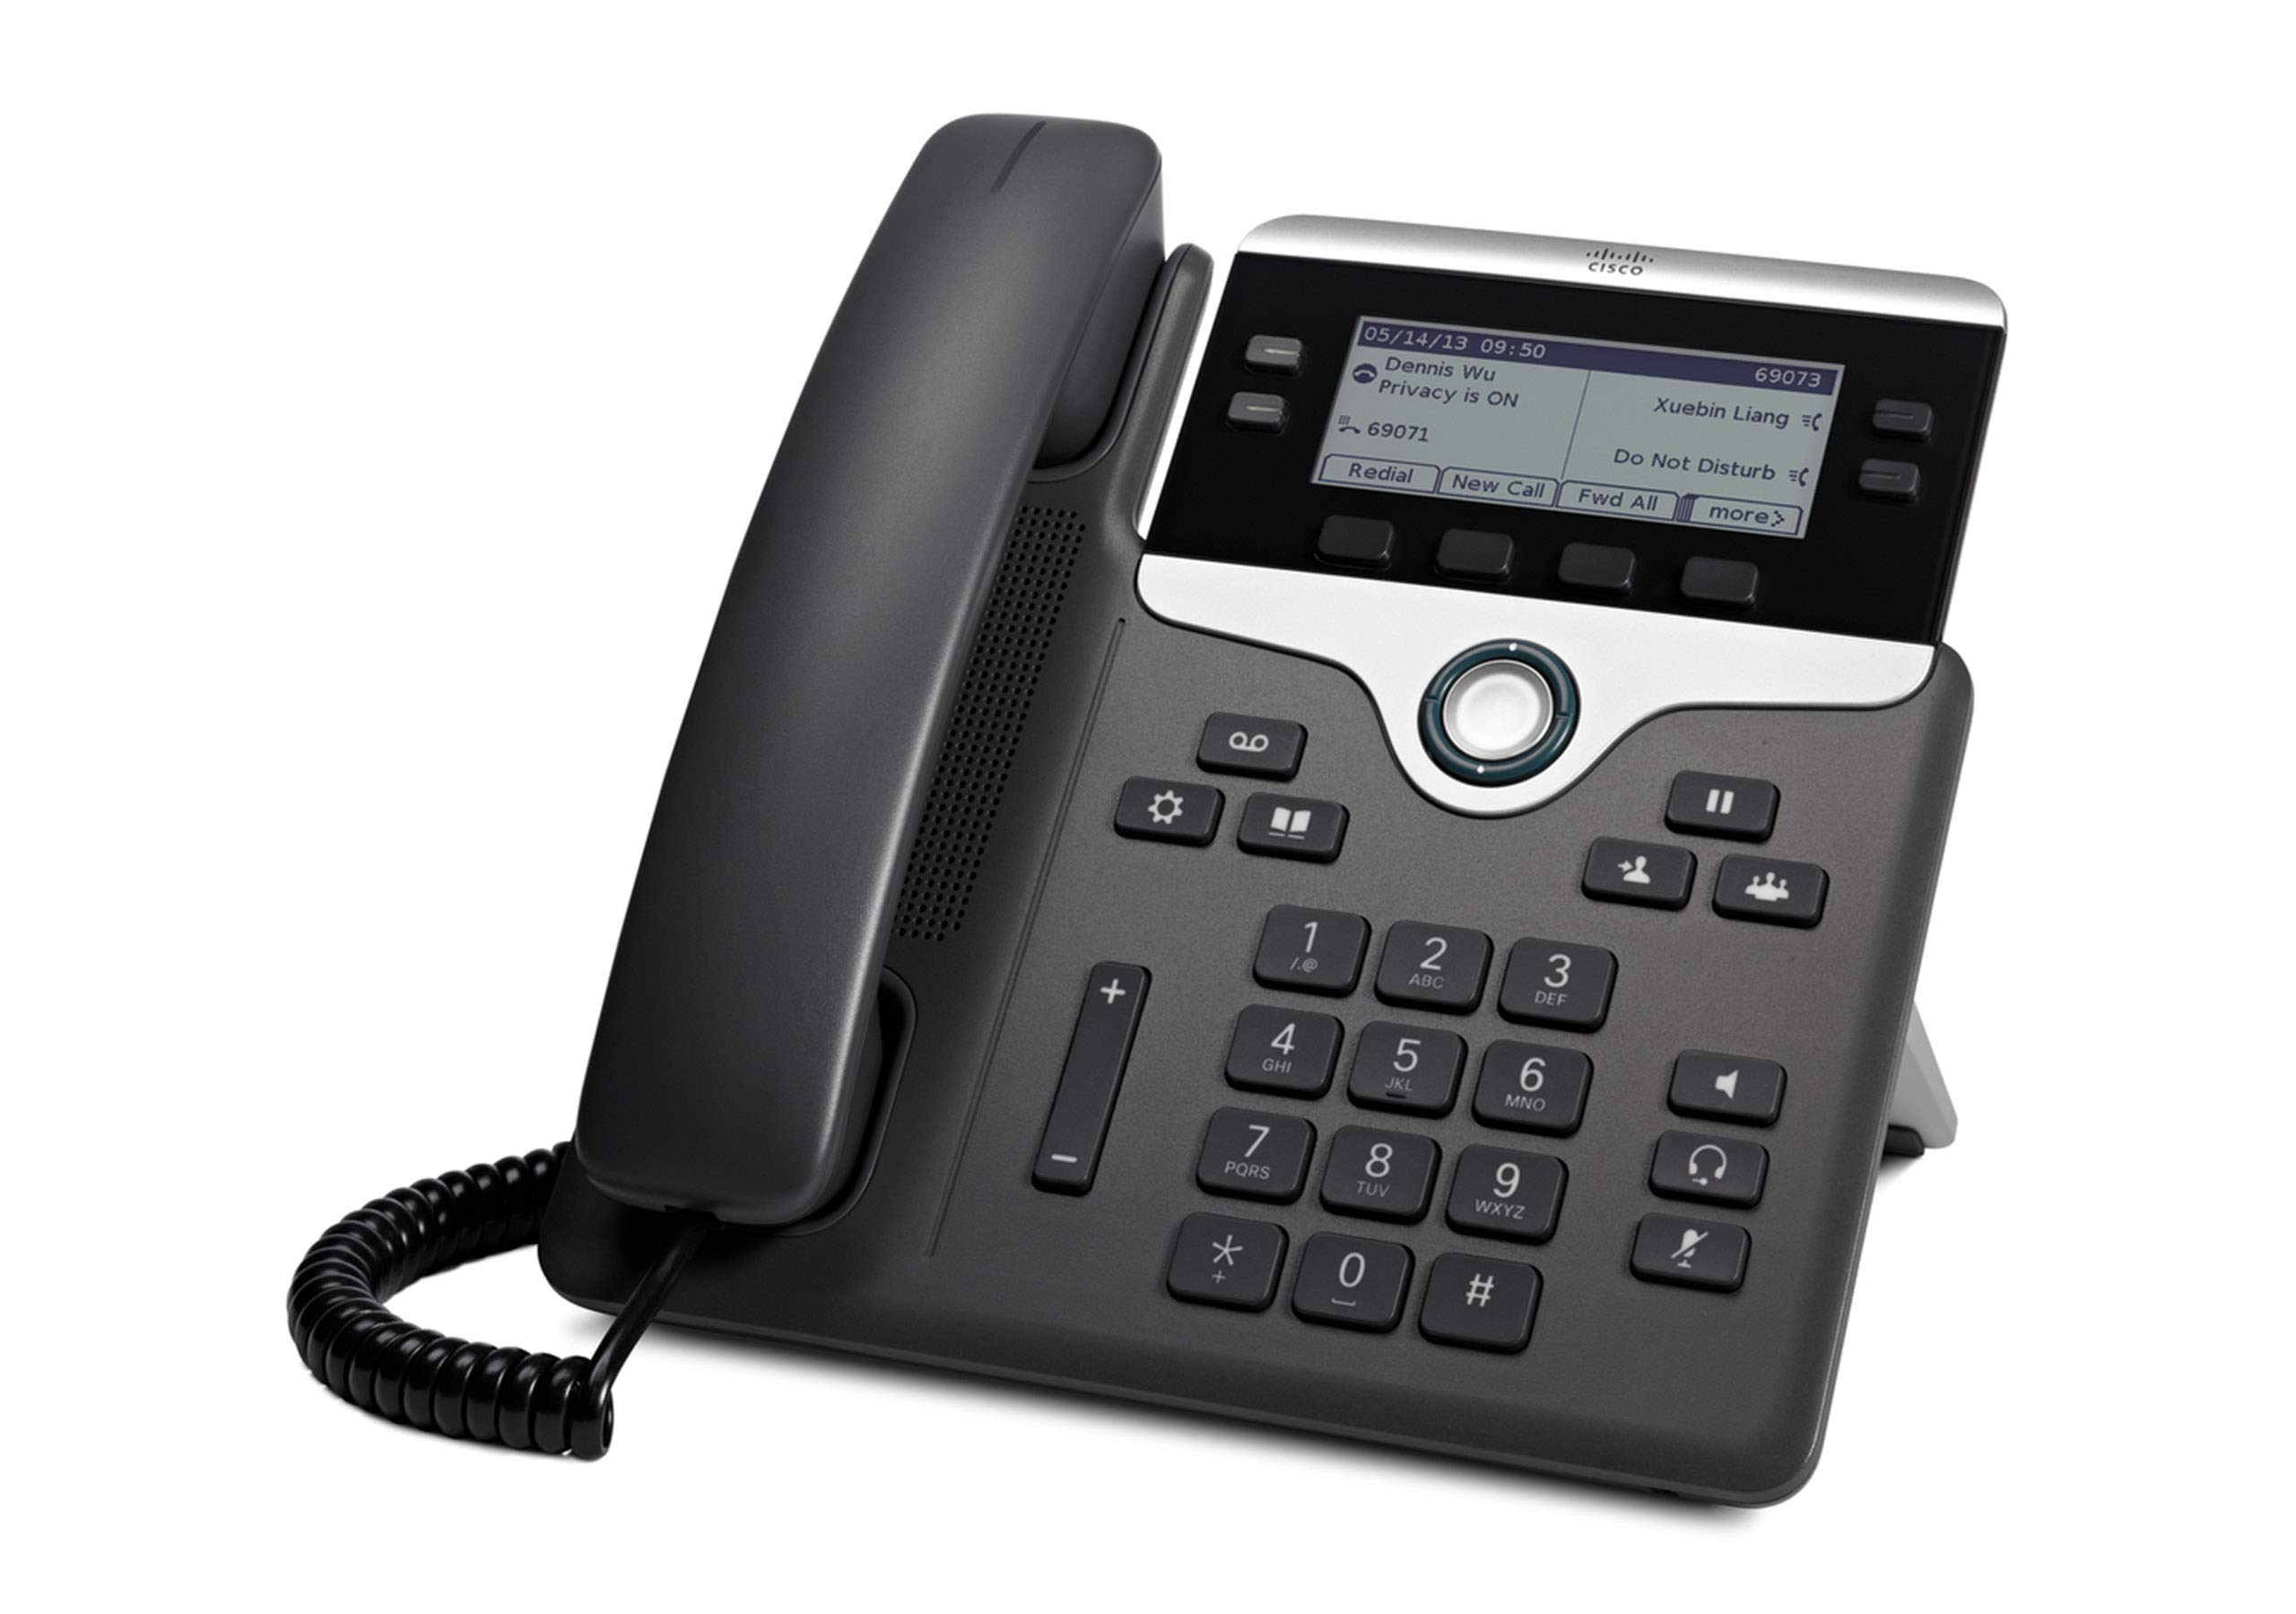 Cisco Remanufactured IP Business Phone 7841, 3.5-inch Grayscale Display, Class 1 PoE, Supports 4 Lines, 1-Year Limited Hardware Warranty (CP-7841-K9-RF)